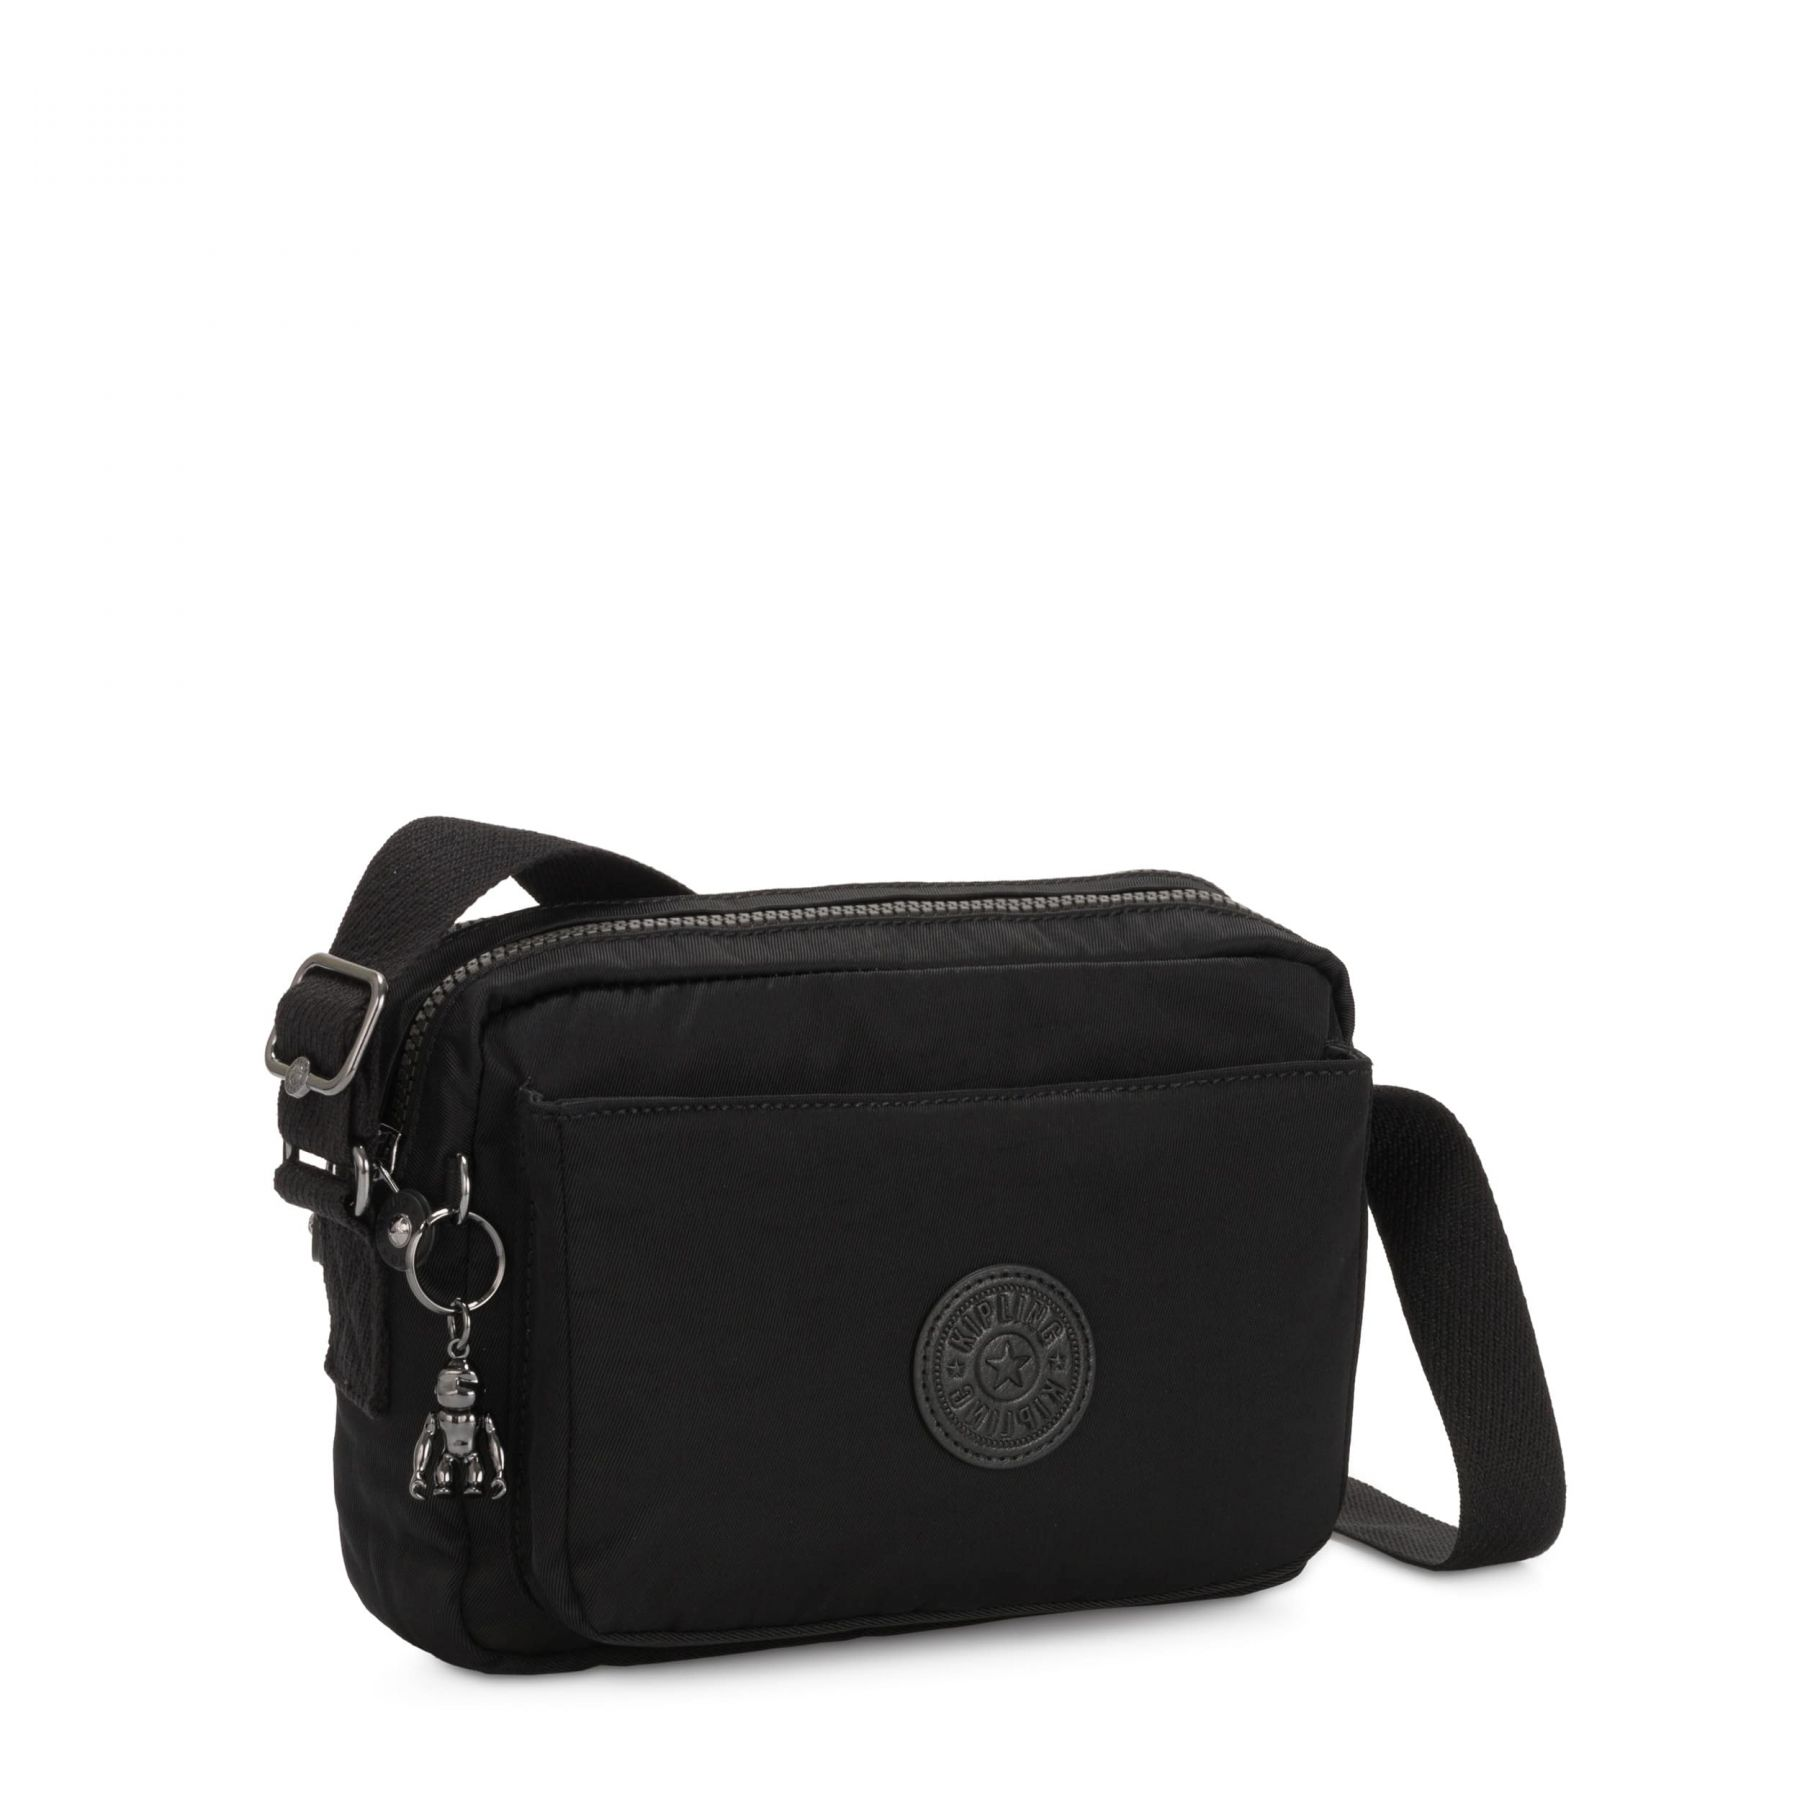 ABANU M Latest Shoulder Bags by Kipling - view 4